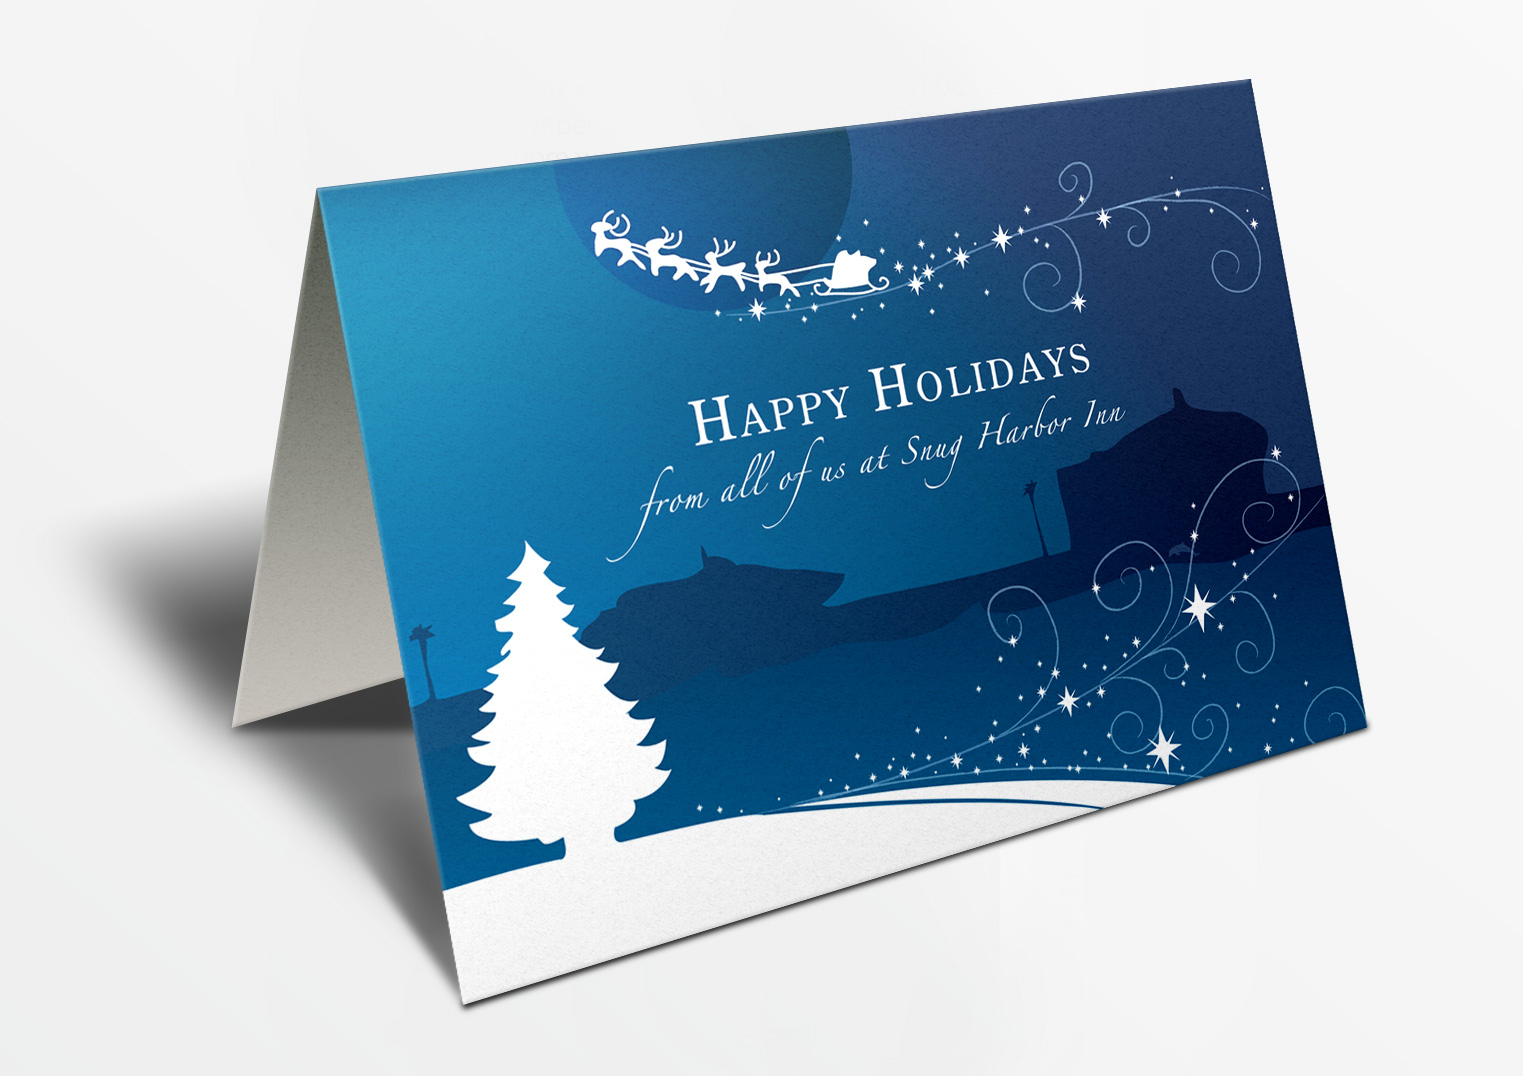 Hotel Holiday Card